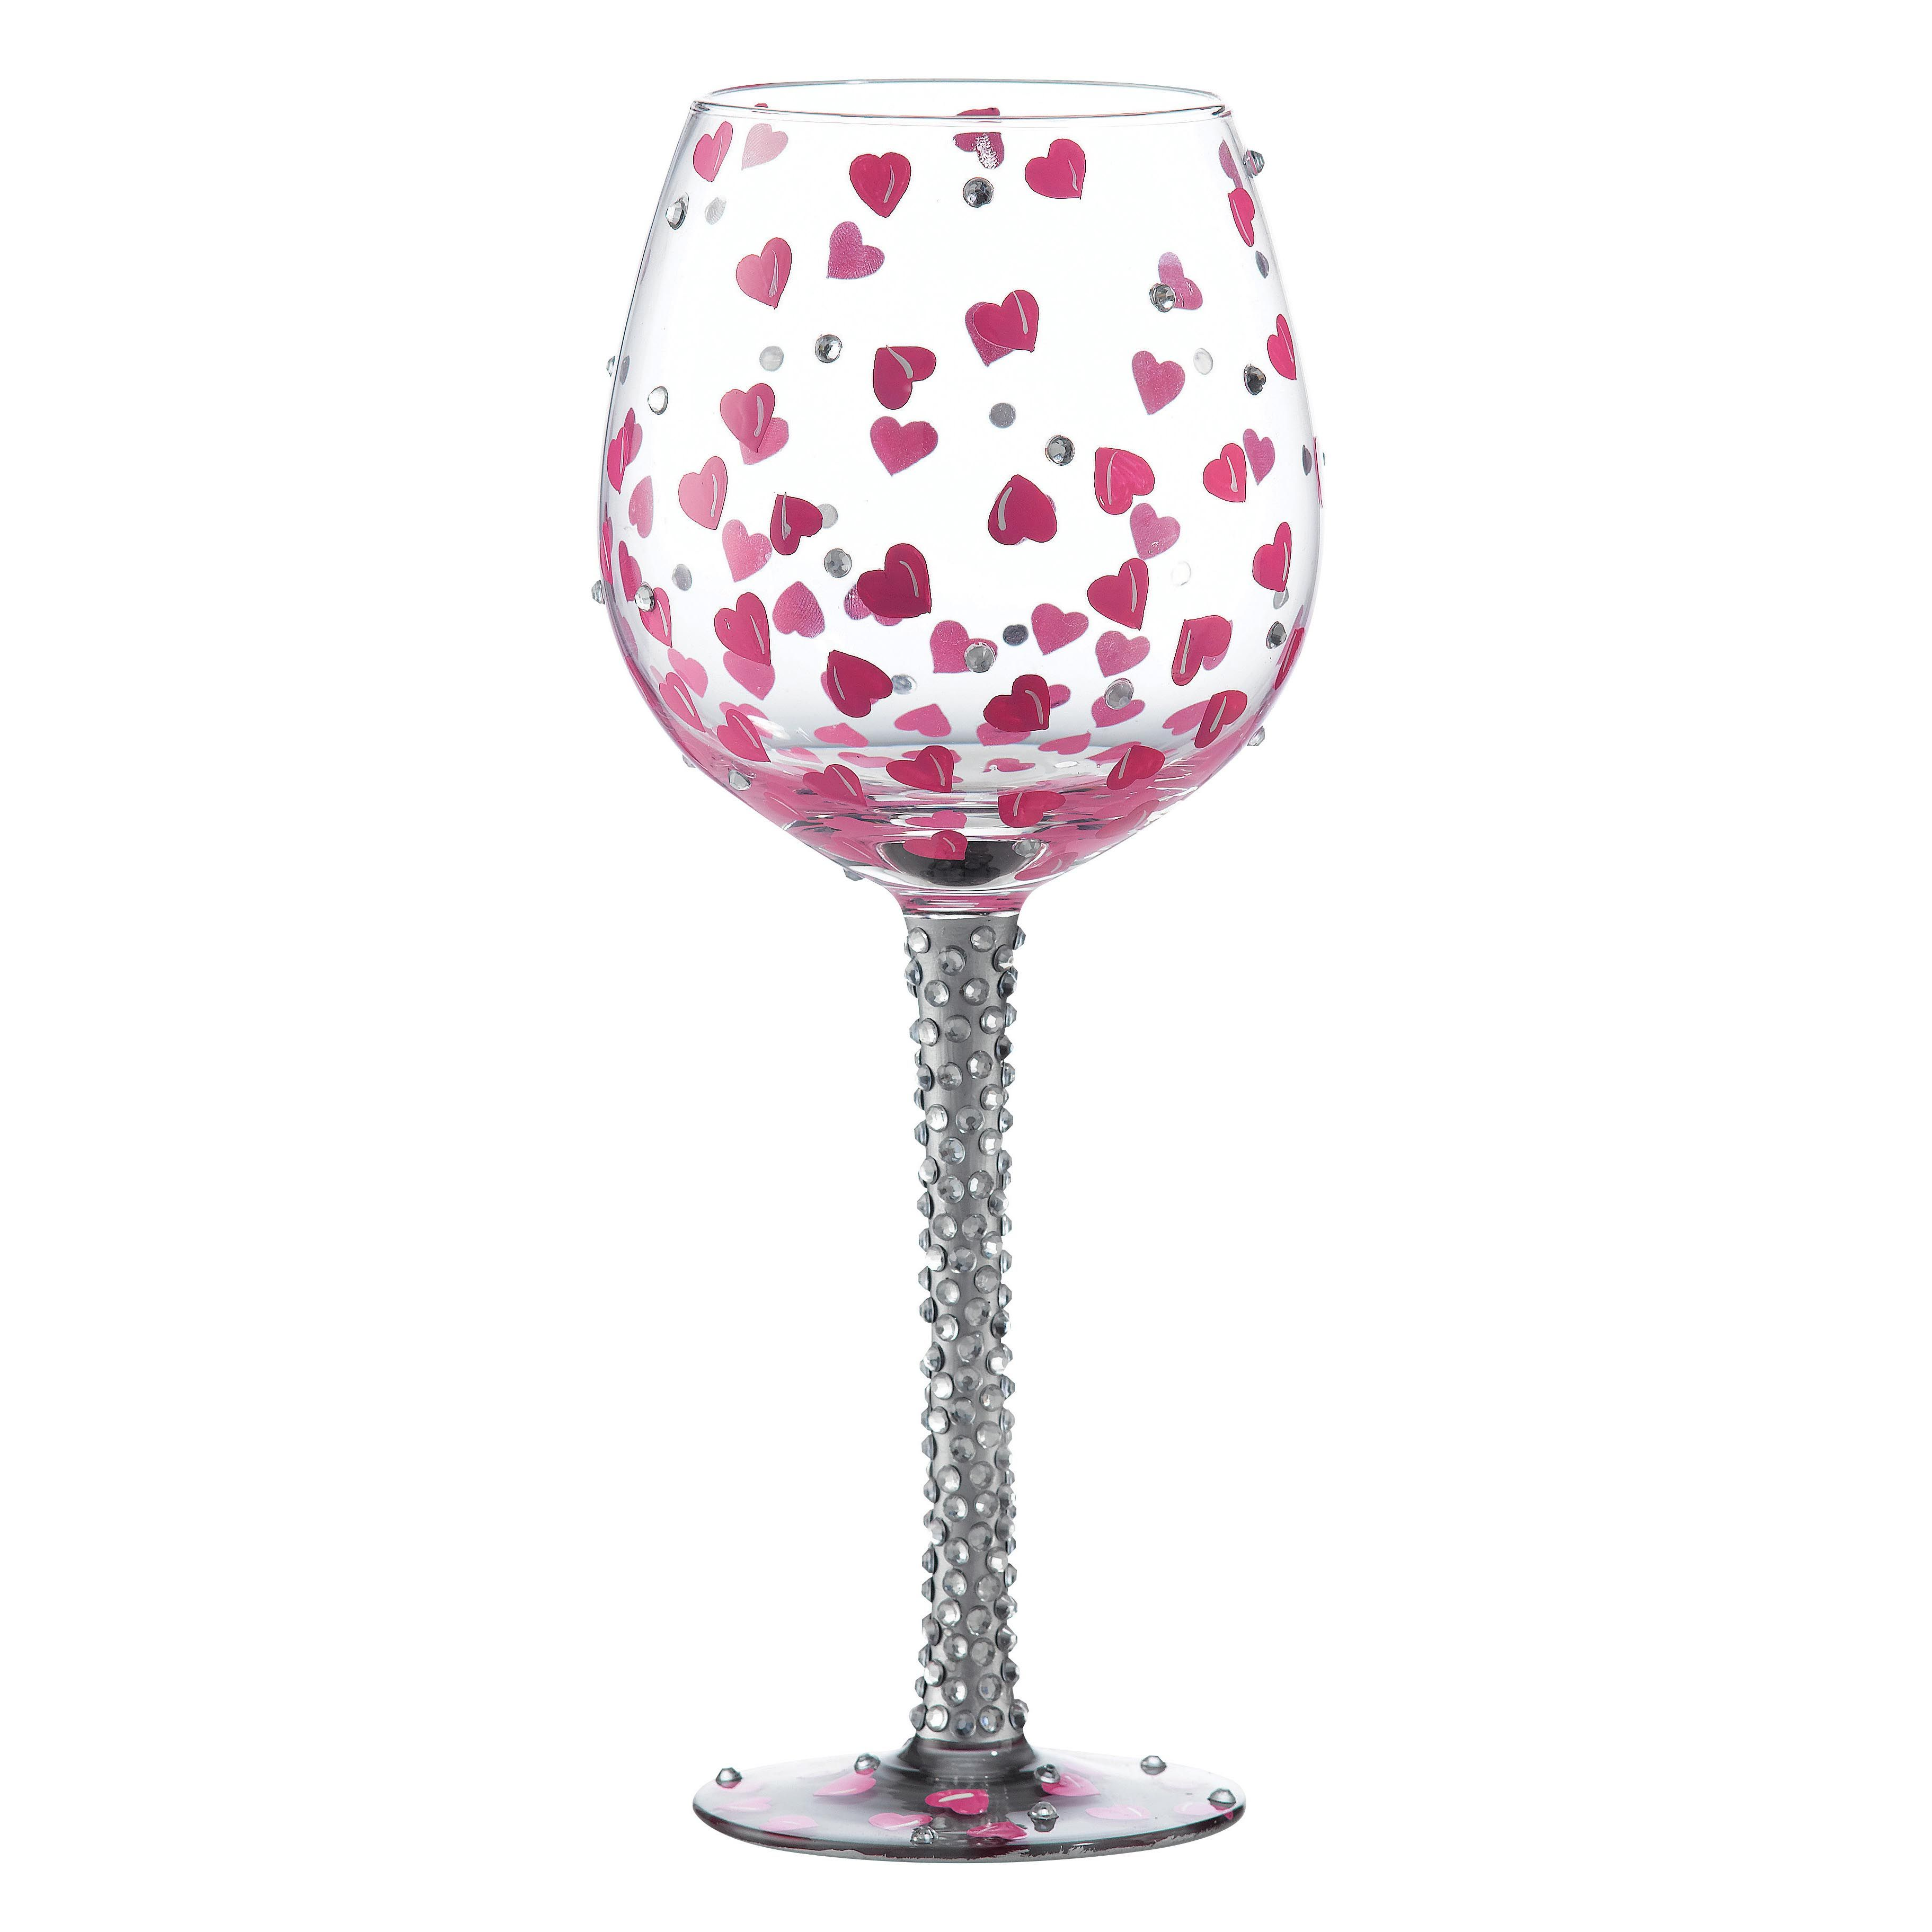 GLS20-5524H Superbling Pretty Girl Extra Large Wine Glass- You will always be beautiful. Be what you want to be, not what others want you to be. Covered in pink hearts and tons of rhinestones, make someone feel extra special with this gift #heart #lolita #bling